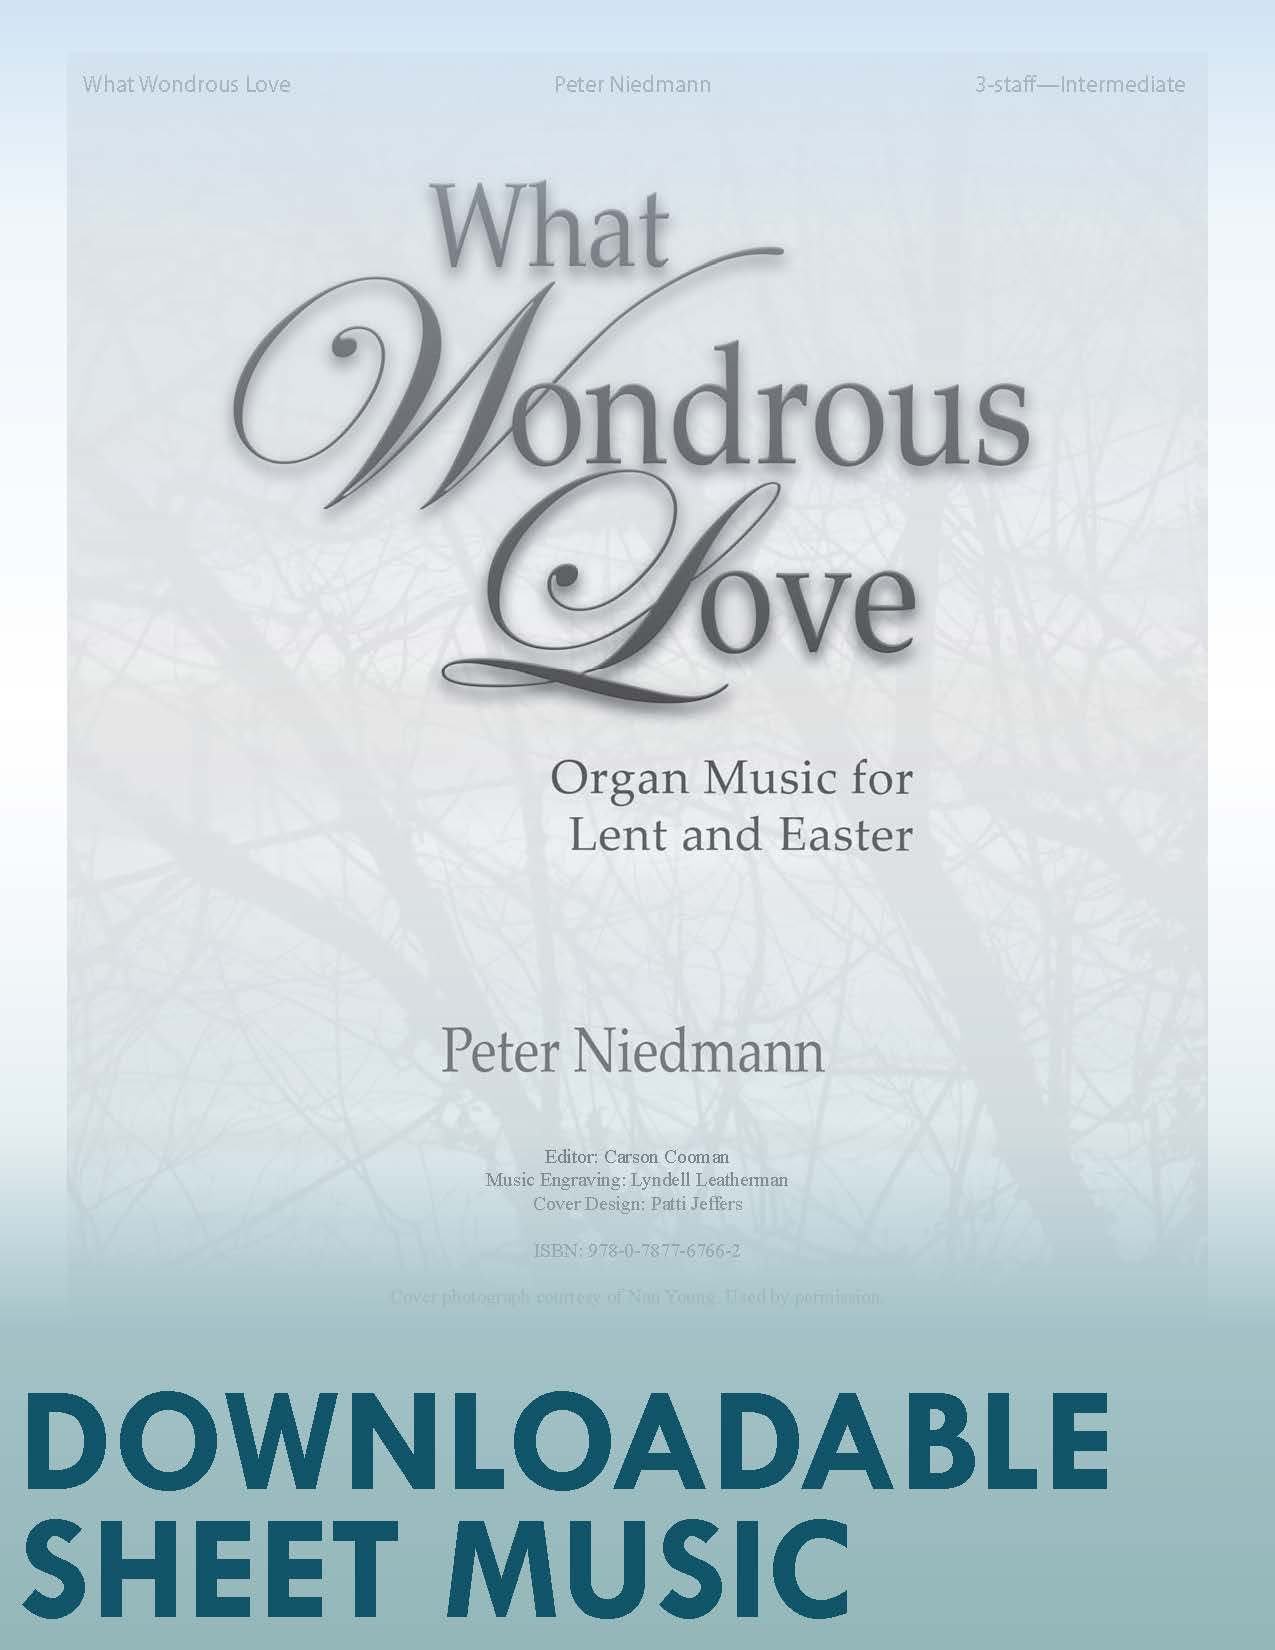 What Wondrous Love - Digital Download